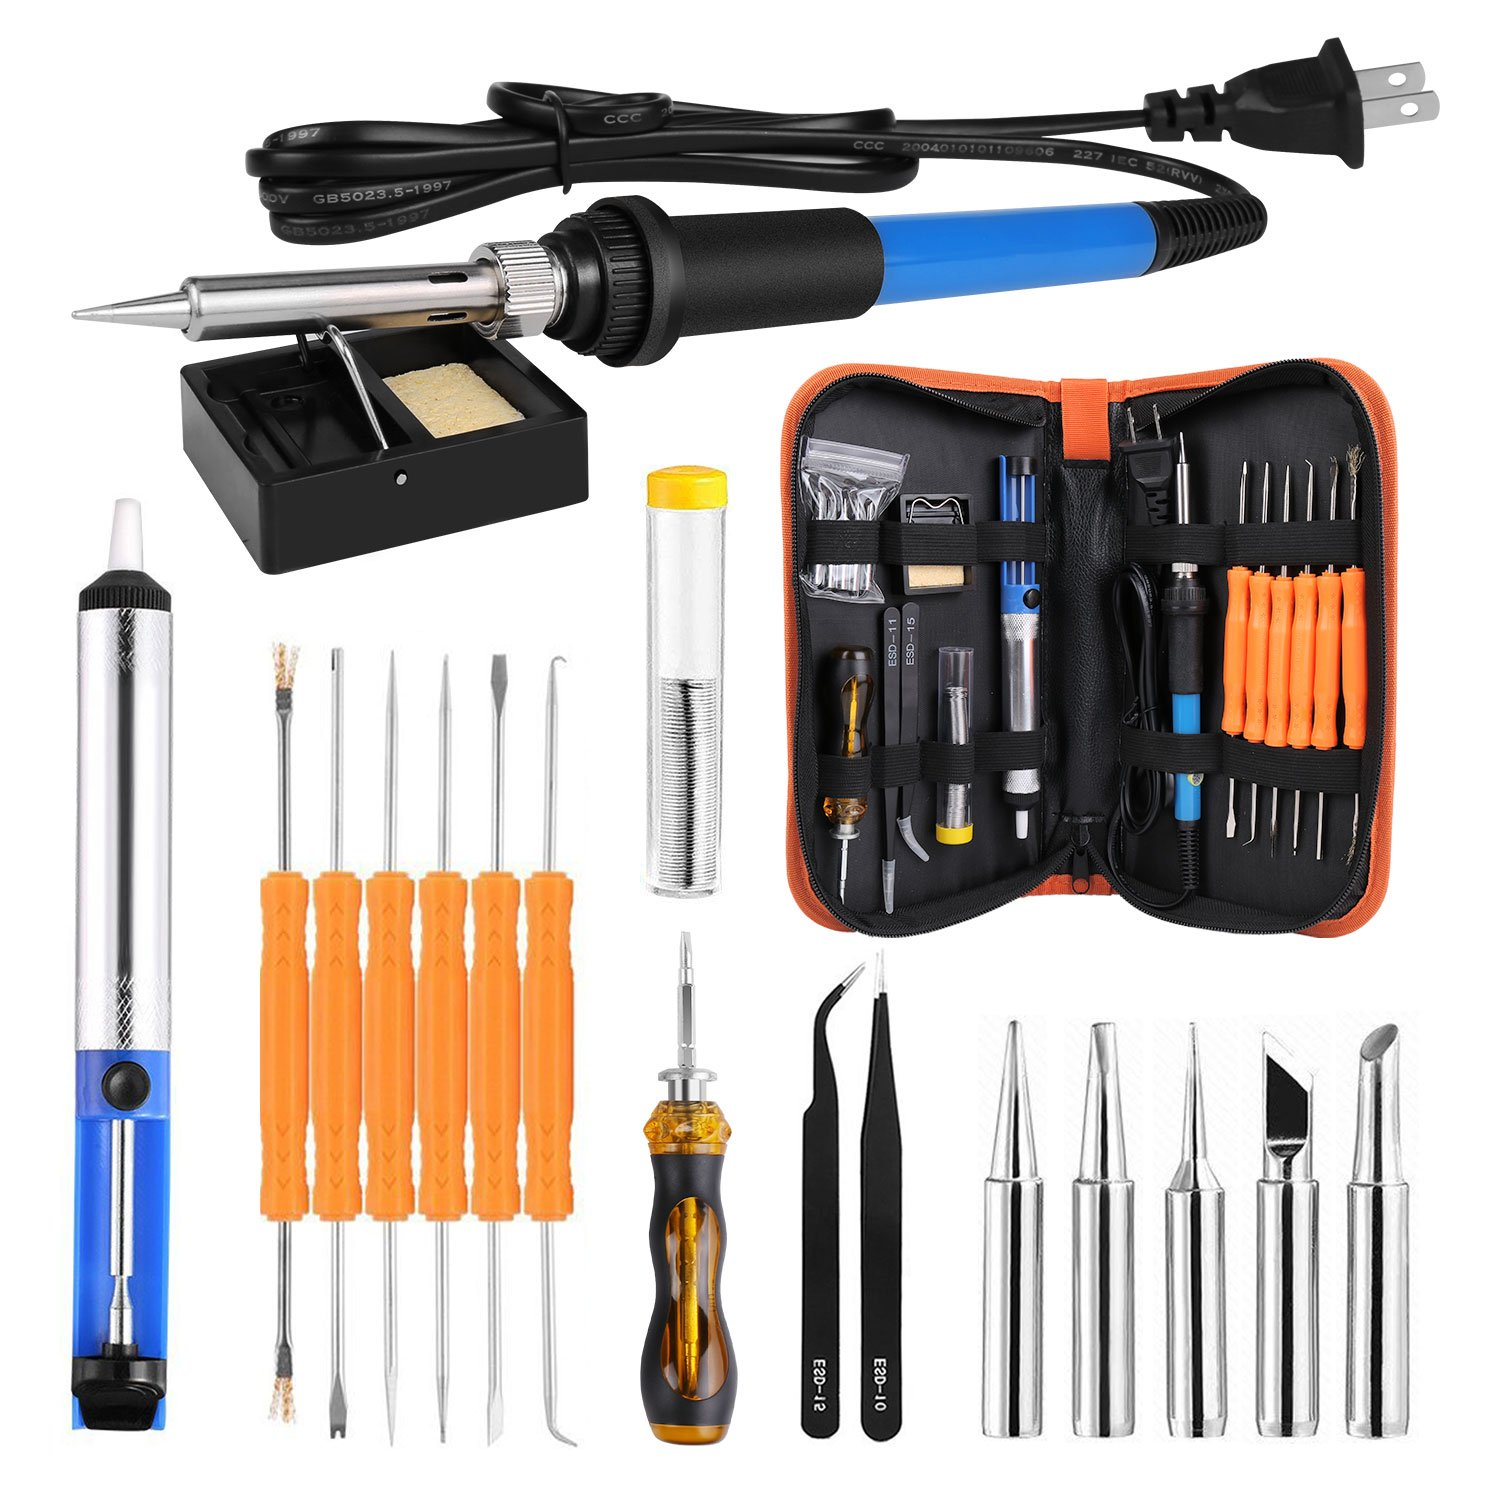 SubClap Soldering Iron Kit, 60W 110V Adjustable Temperature Welding Iron with Desoldering Pump, 5pcs Different Tips, 6pcs Solder Assist Tools, Tweezers, Solder Wire, Stand and Slotted Screwdriver